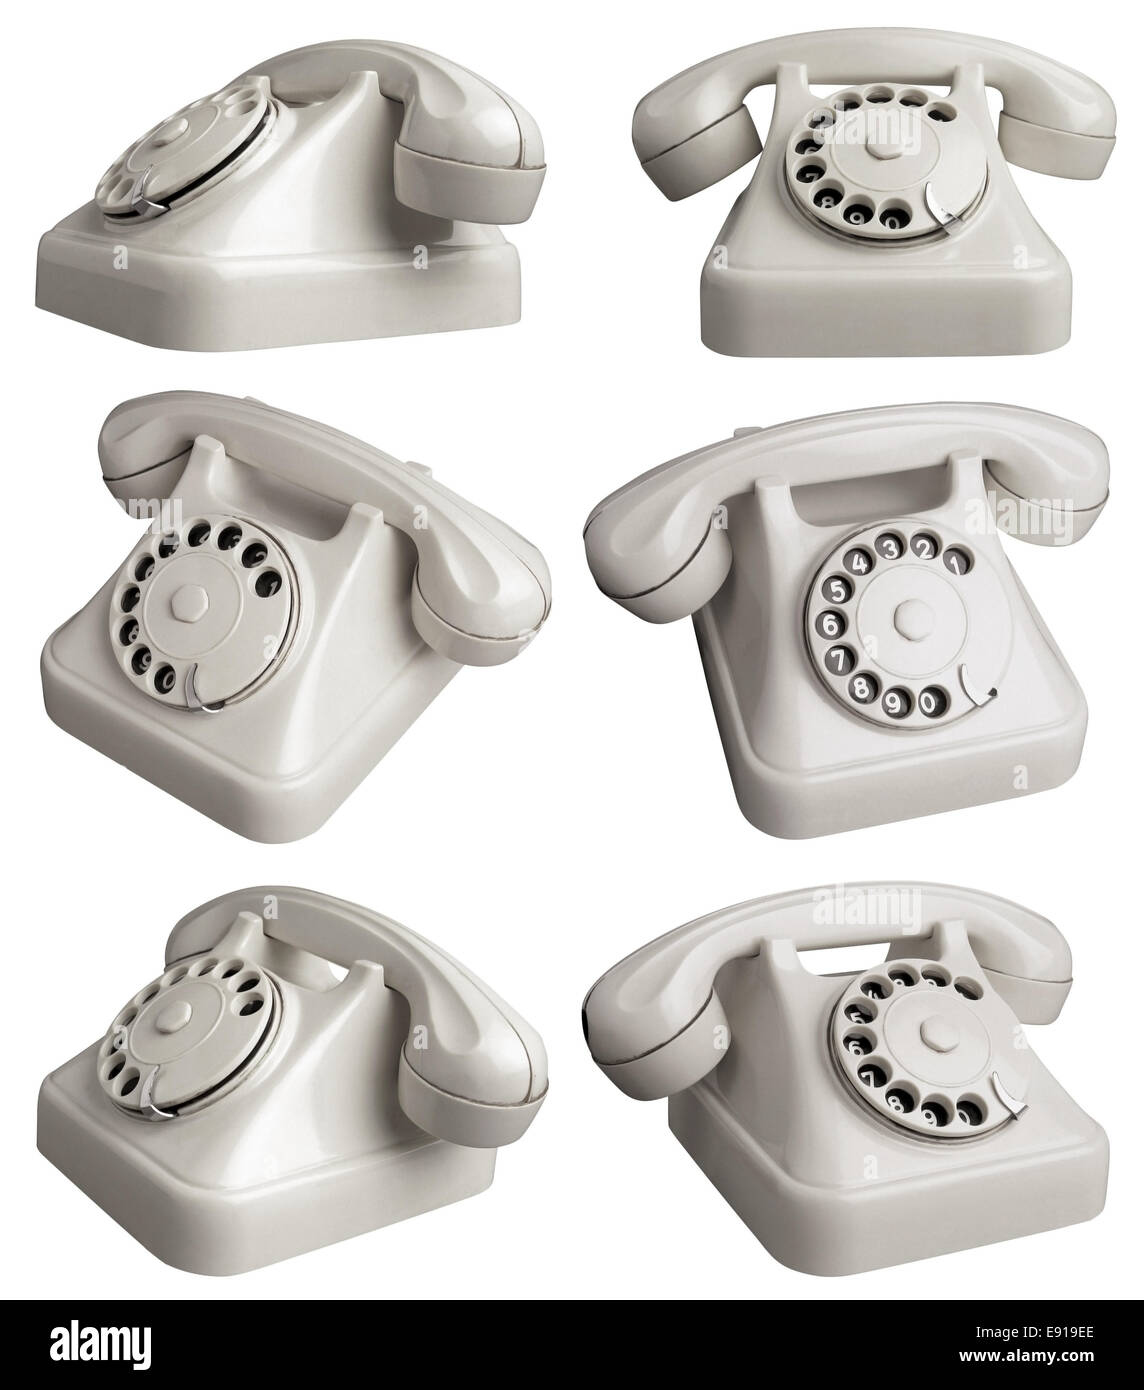 Rotary Telephones - Stock Image